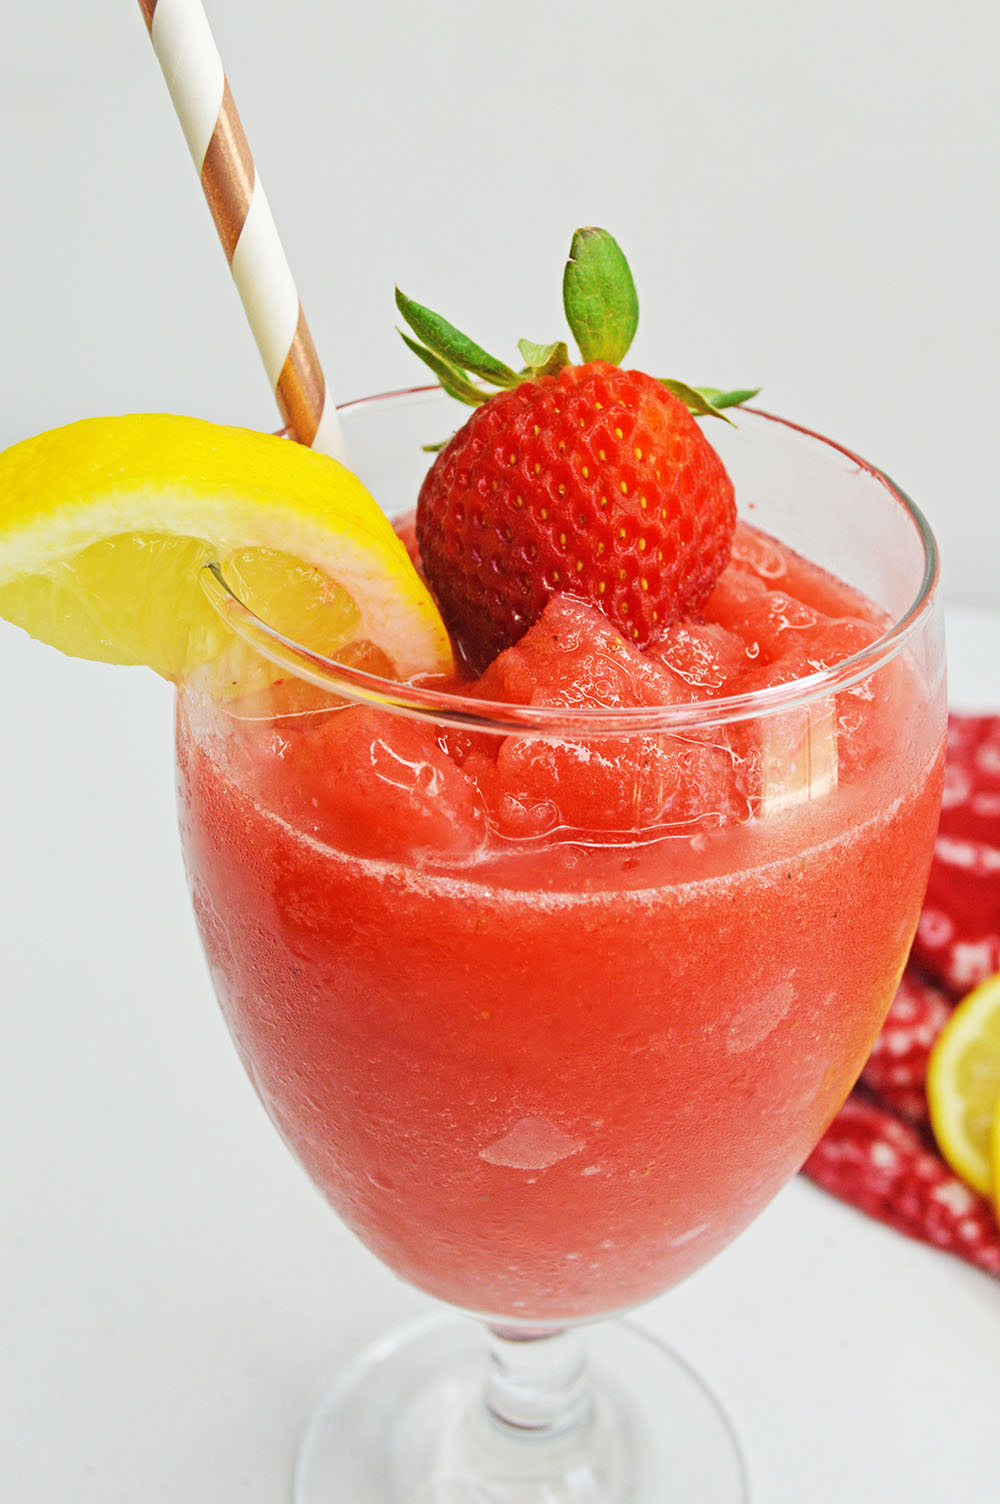 Strawberry lemon daiquiri recipe | Eat, Drink, and Save Money